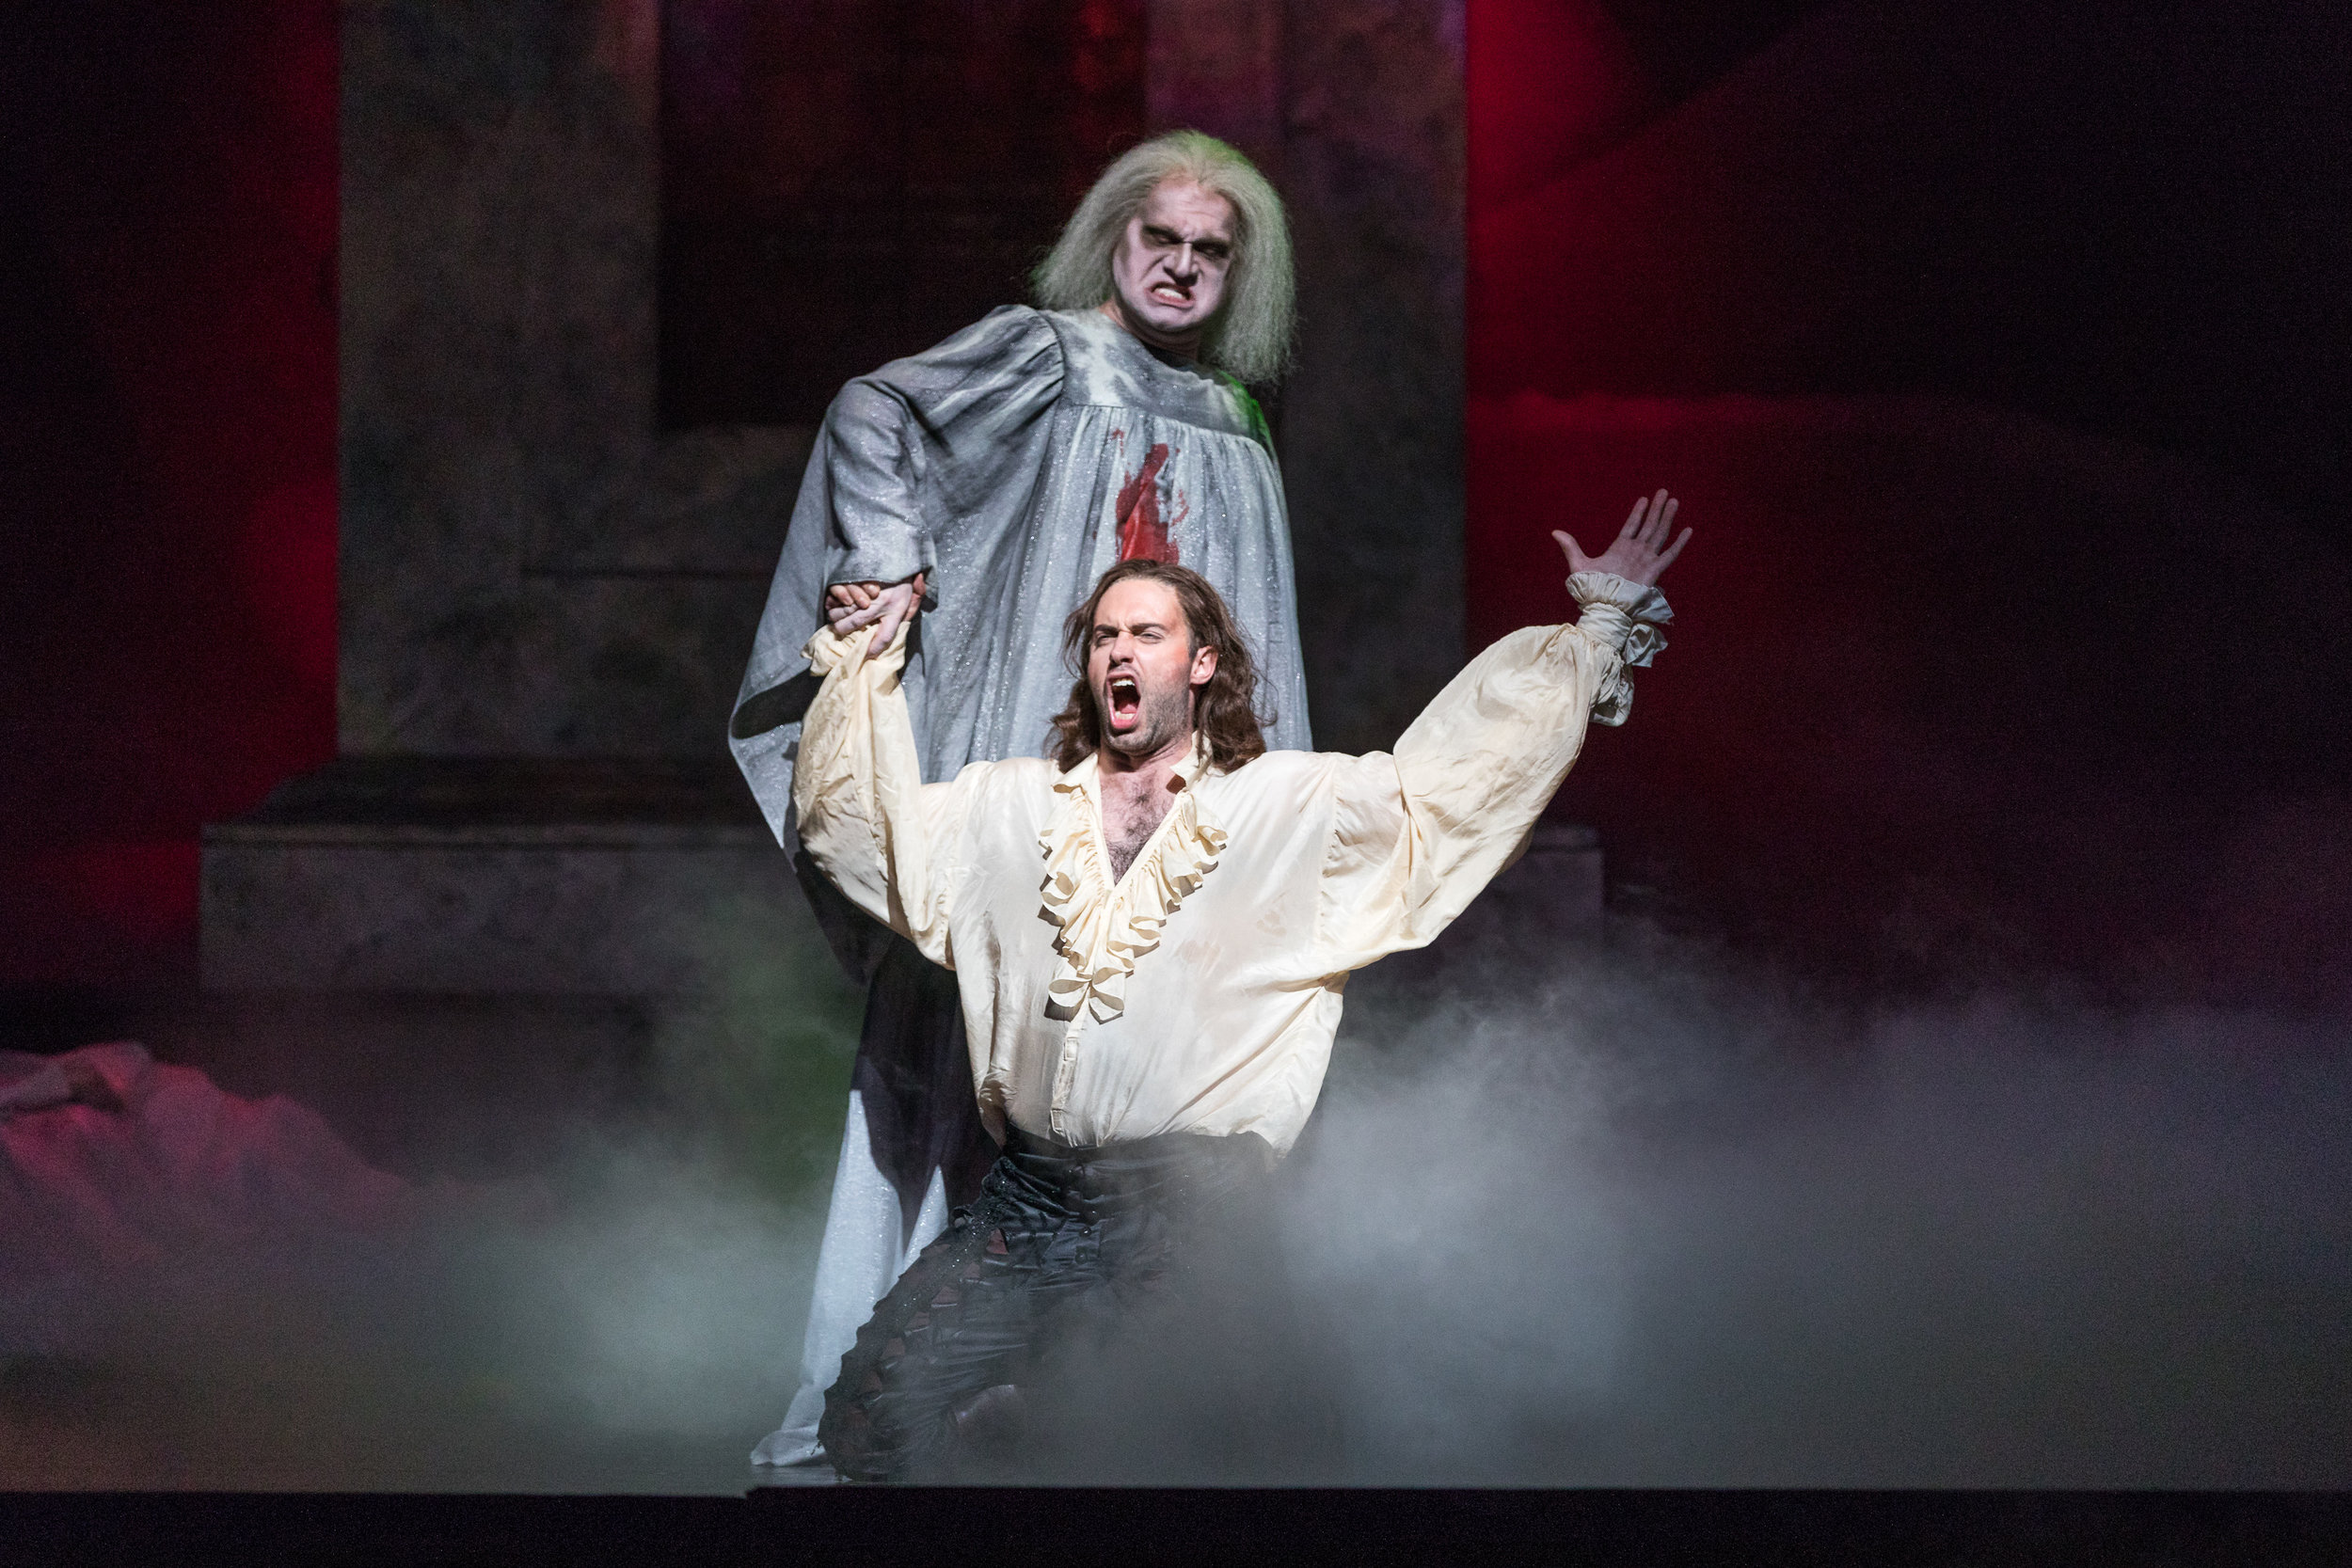 The ghost of the Commendatore (Nathan Stark) offers Don Giovanni (Tobias Greenhalgh) one last chance to repent. Photo by Ben Schill Photography; courtesy of the Virginia Opera